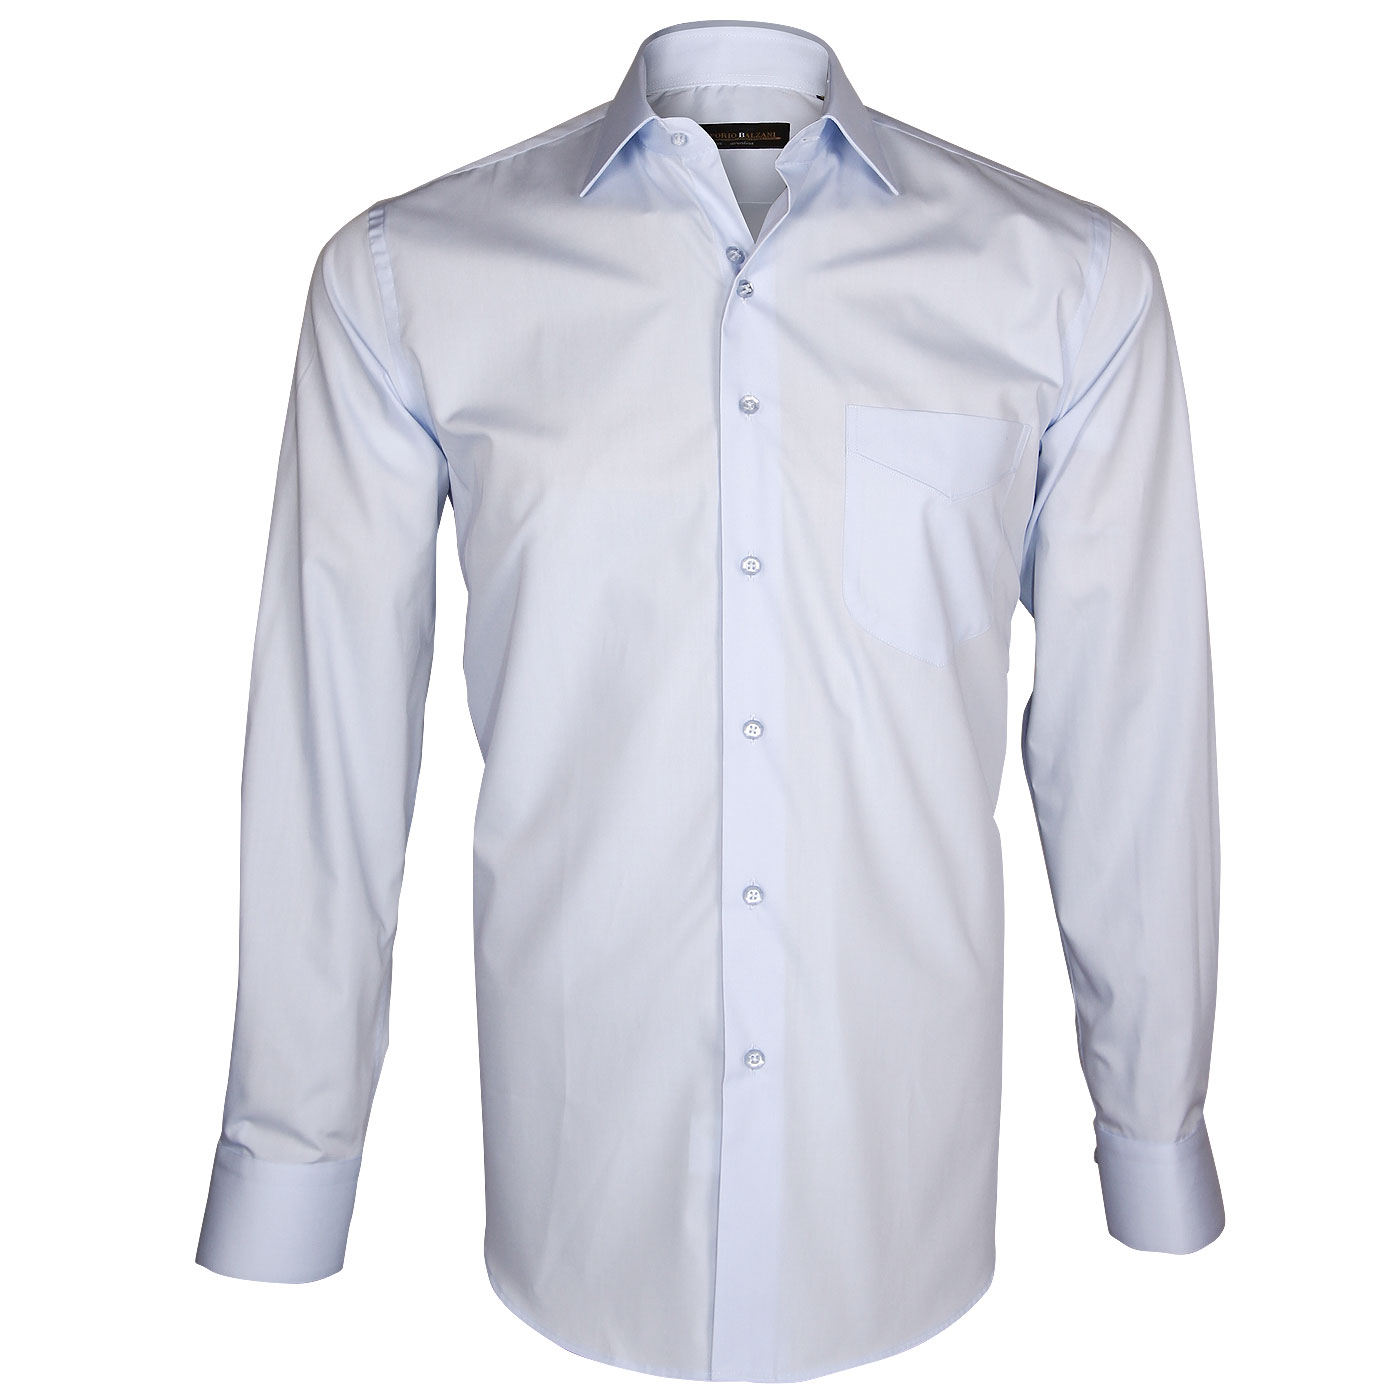 Classic Easy Iron shirt